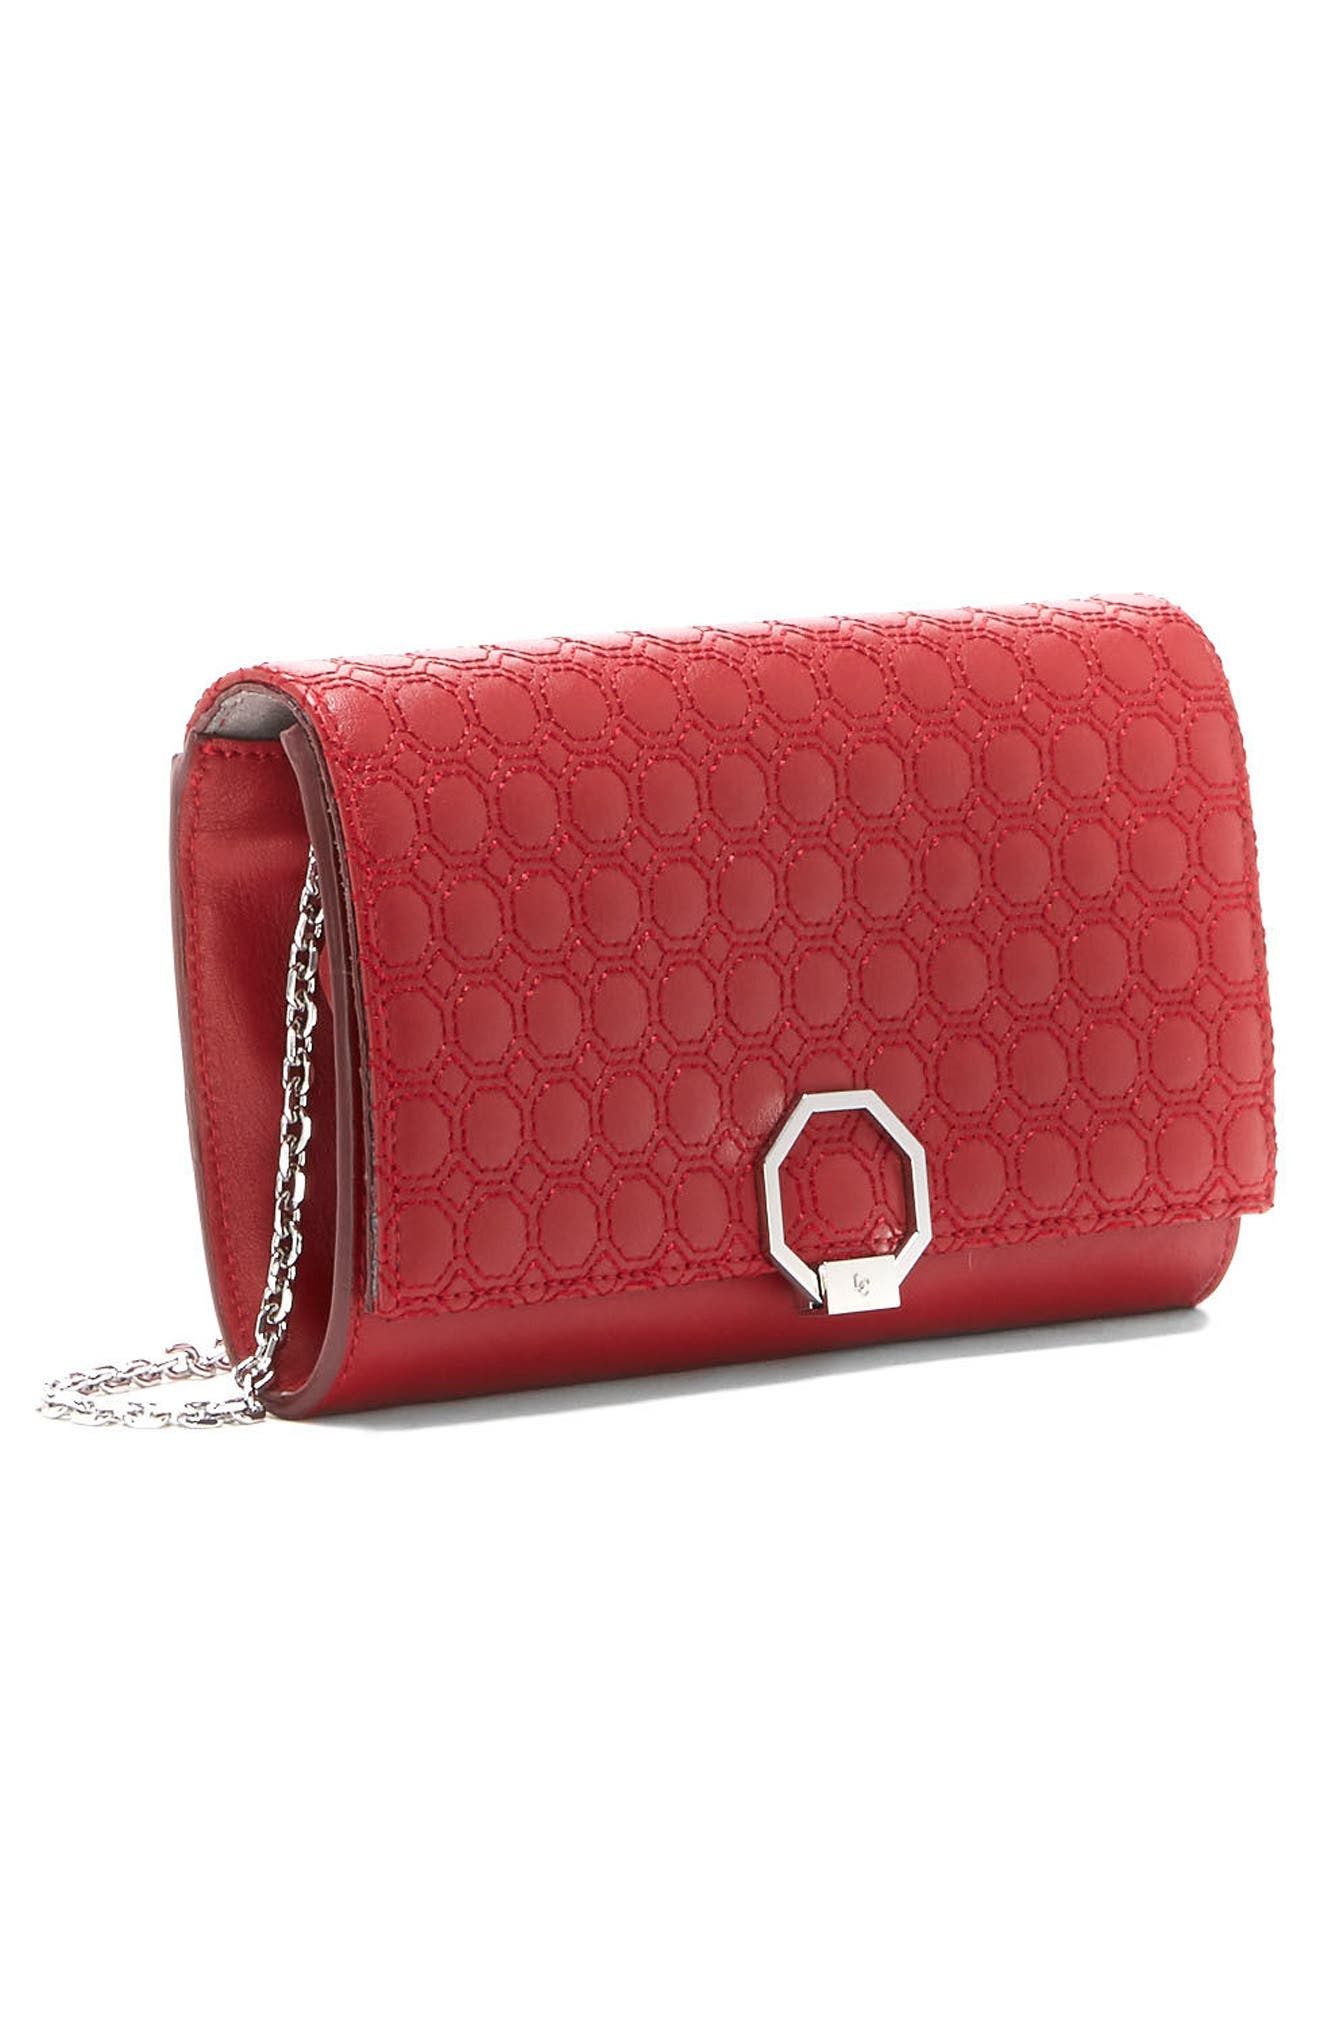 Celya Small Crossbody Bag,                             Alternate thumbnail 2, color,                             Cherry Red